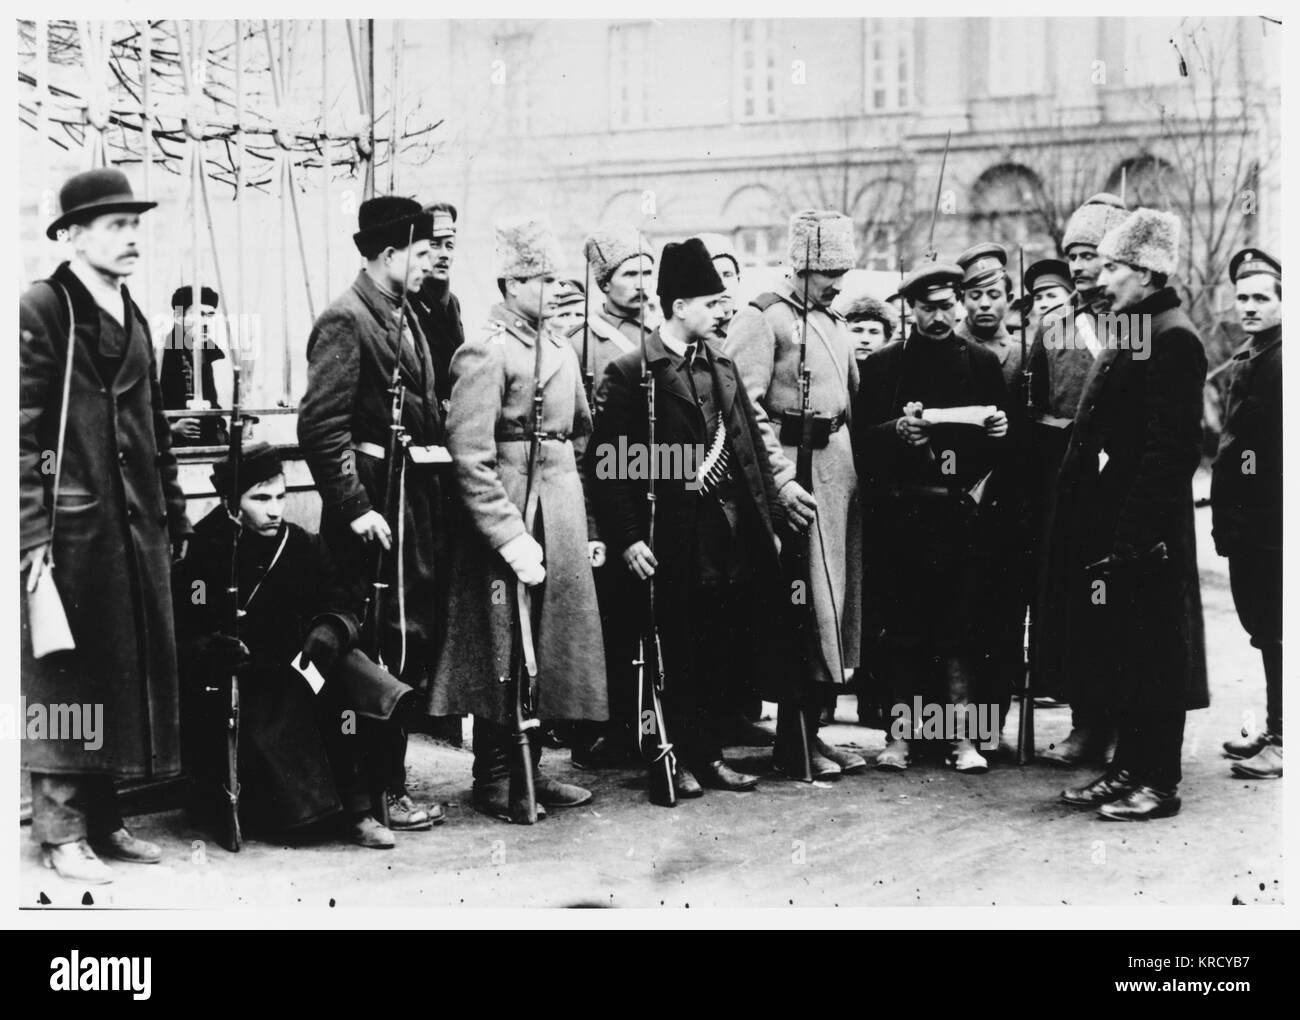 Members of the Red Guard check  people's identification papers  in the streets of Petrograd :  revolutions come - Stock Image